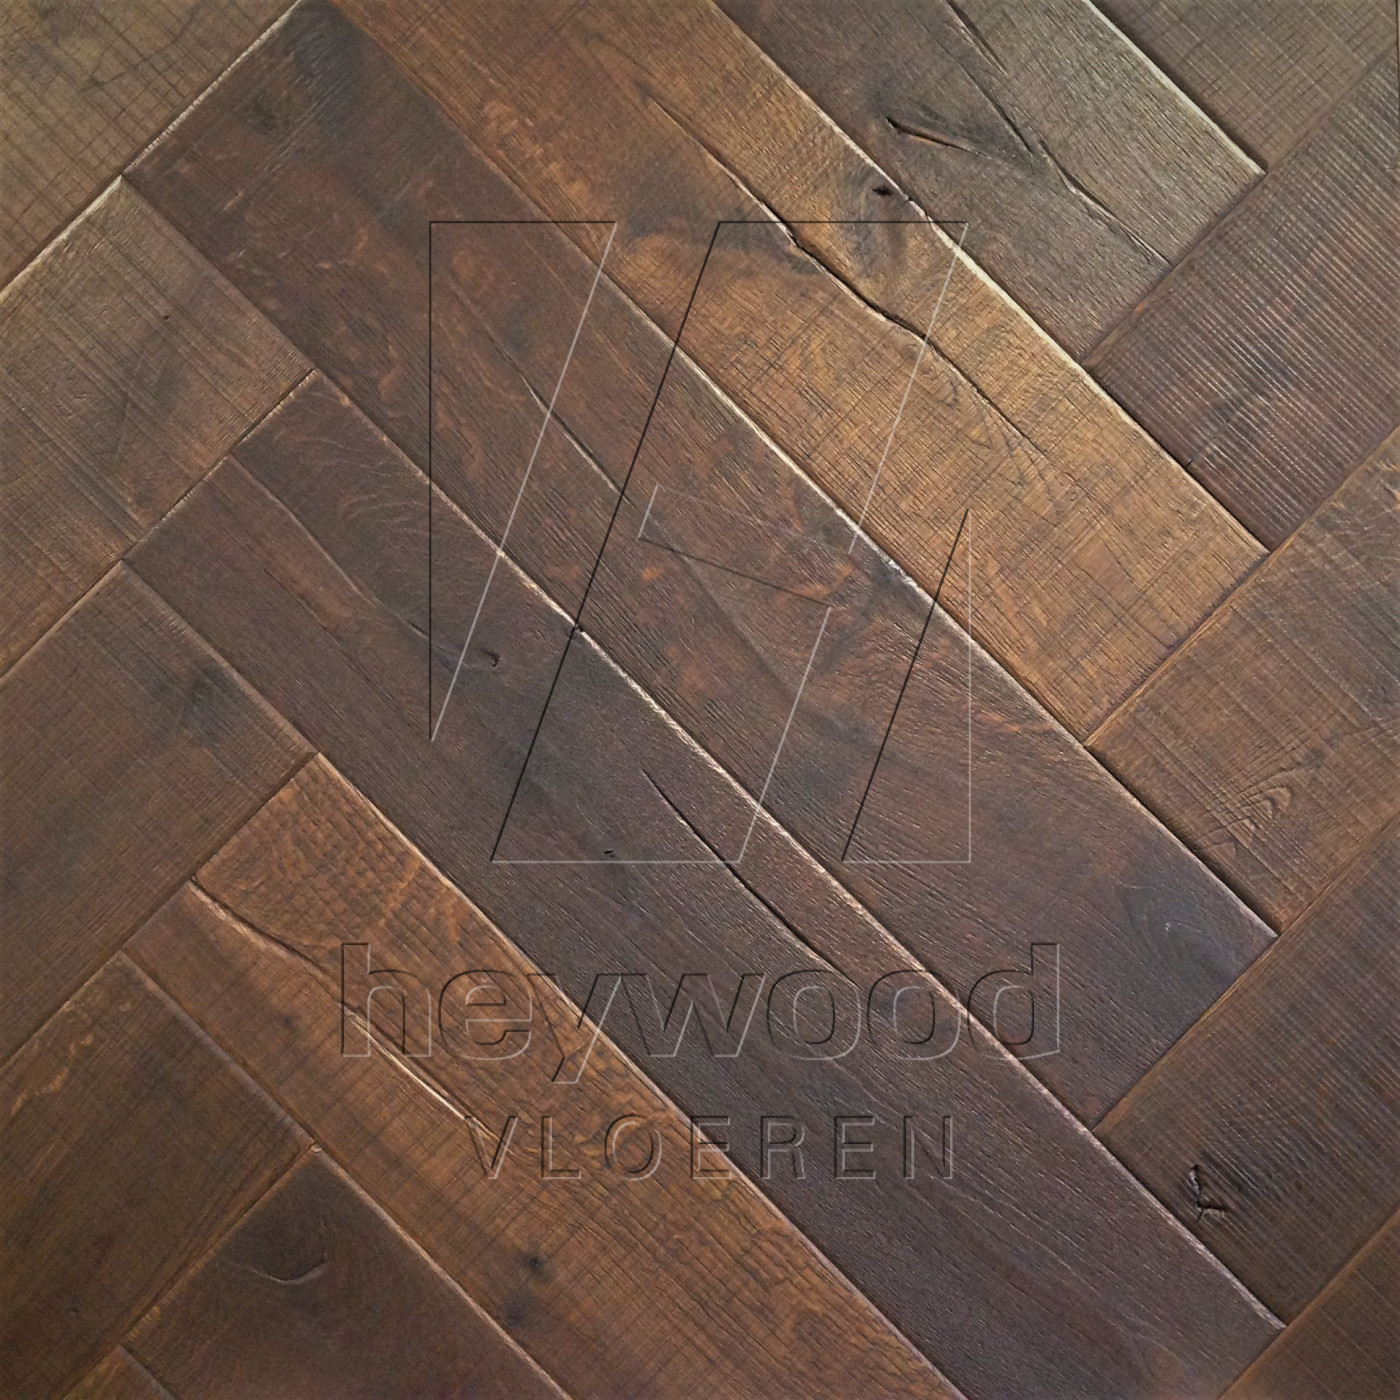 Knotting Hill Herringbone 'Yorkshire' in Herringbone of Pattern & Panel Floors